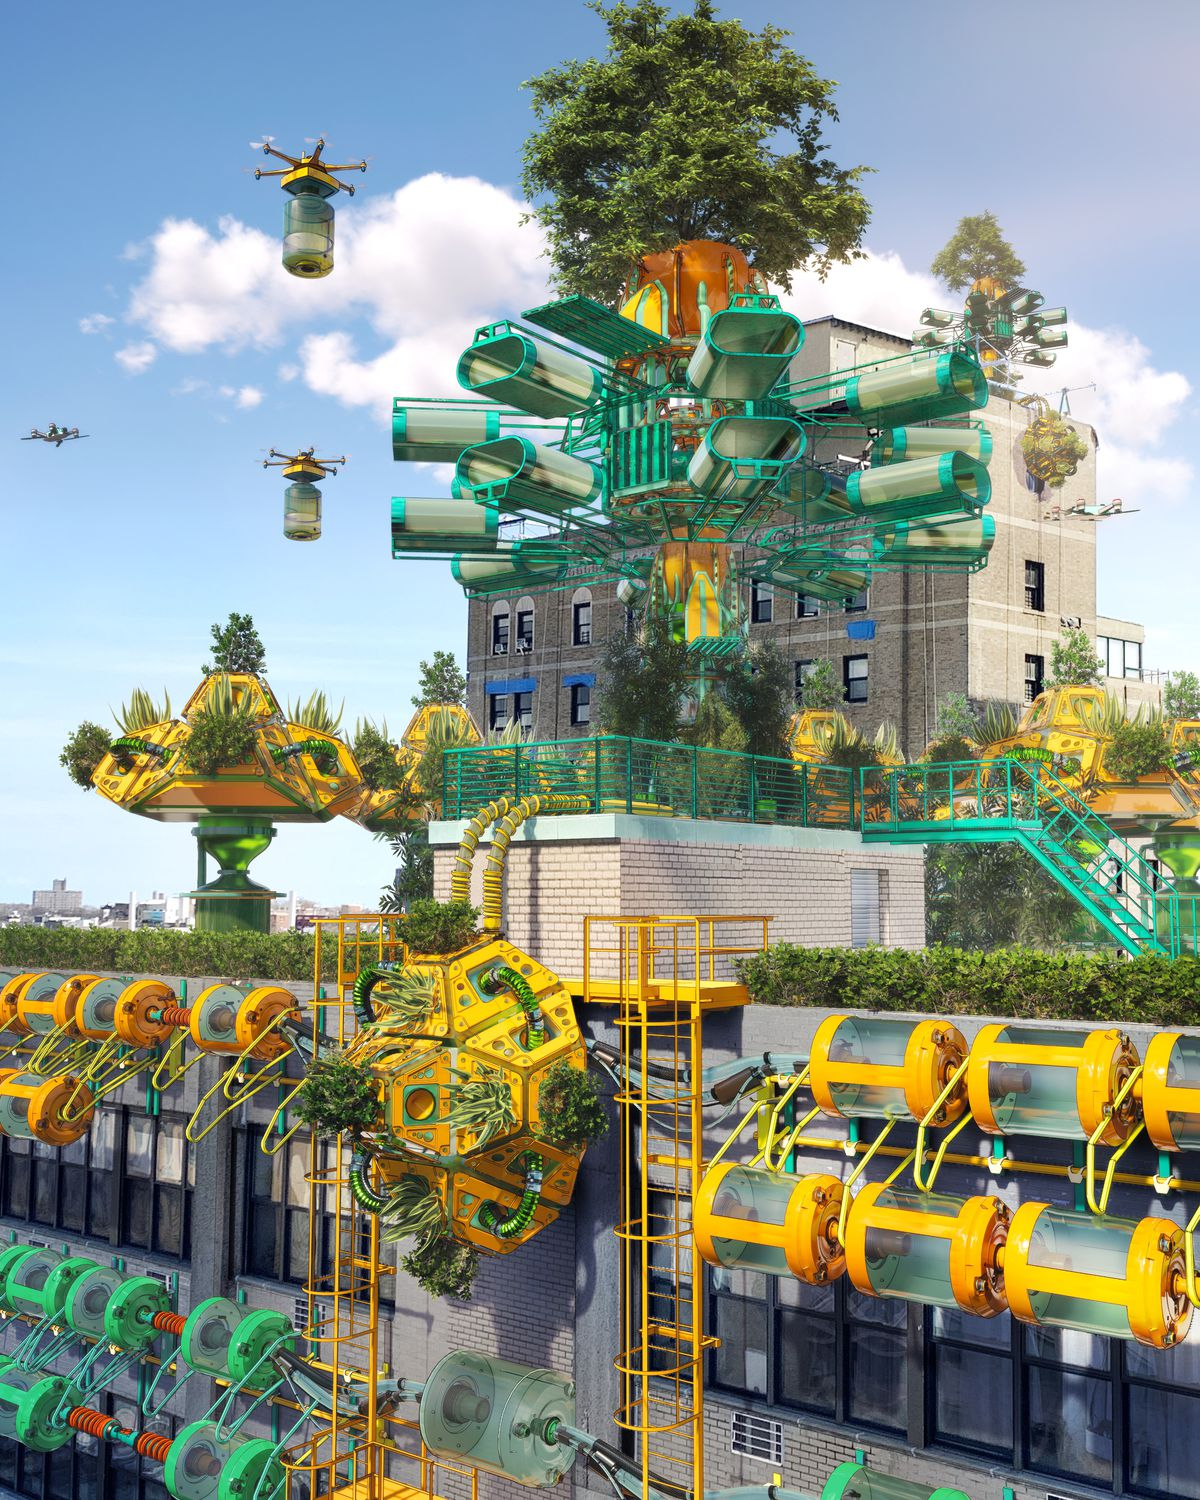 A rendering showing drones carrying canisters, a vertical farm, and futuristic infrastructure